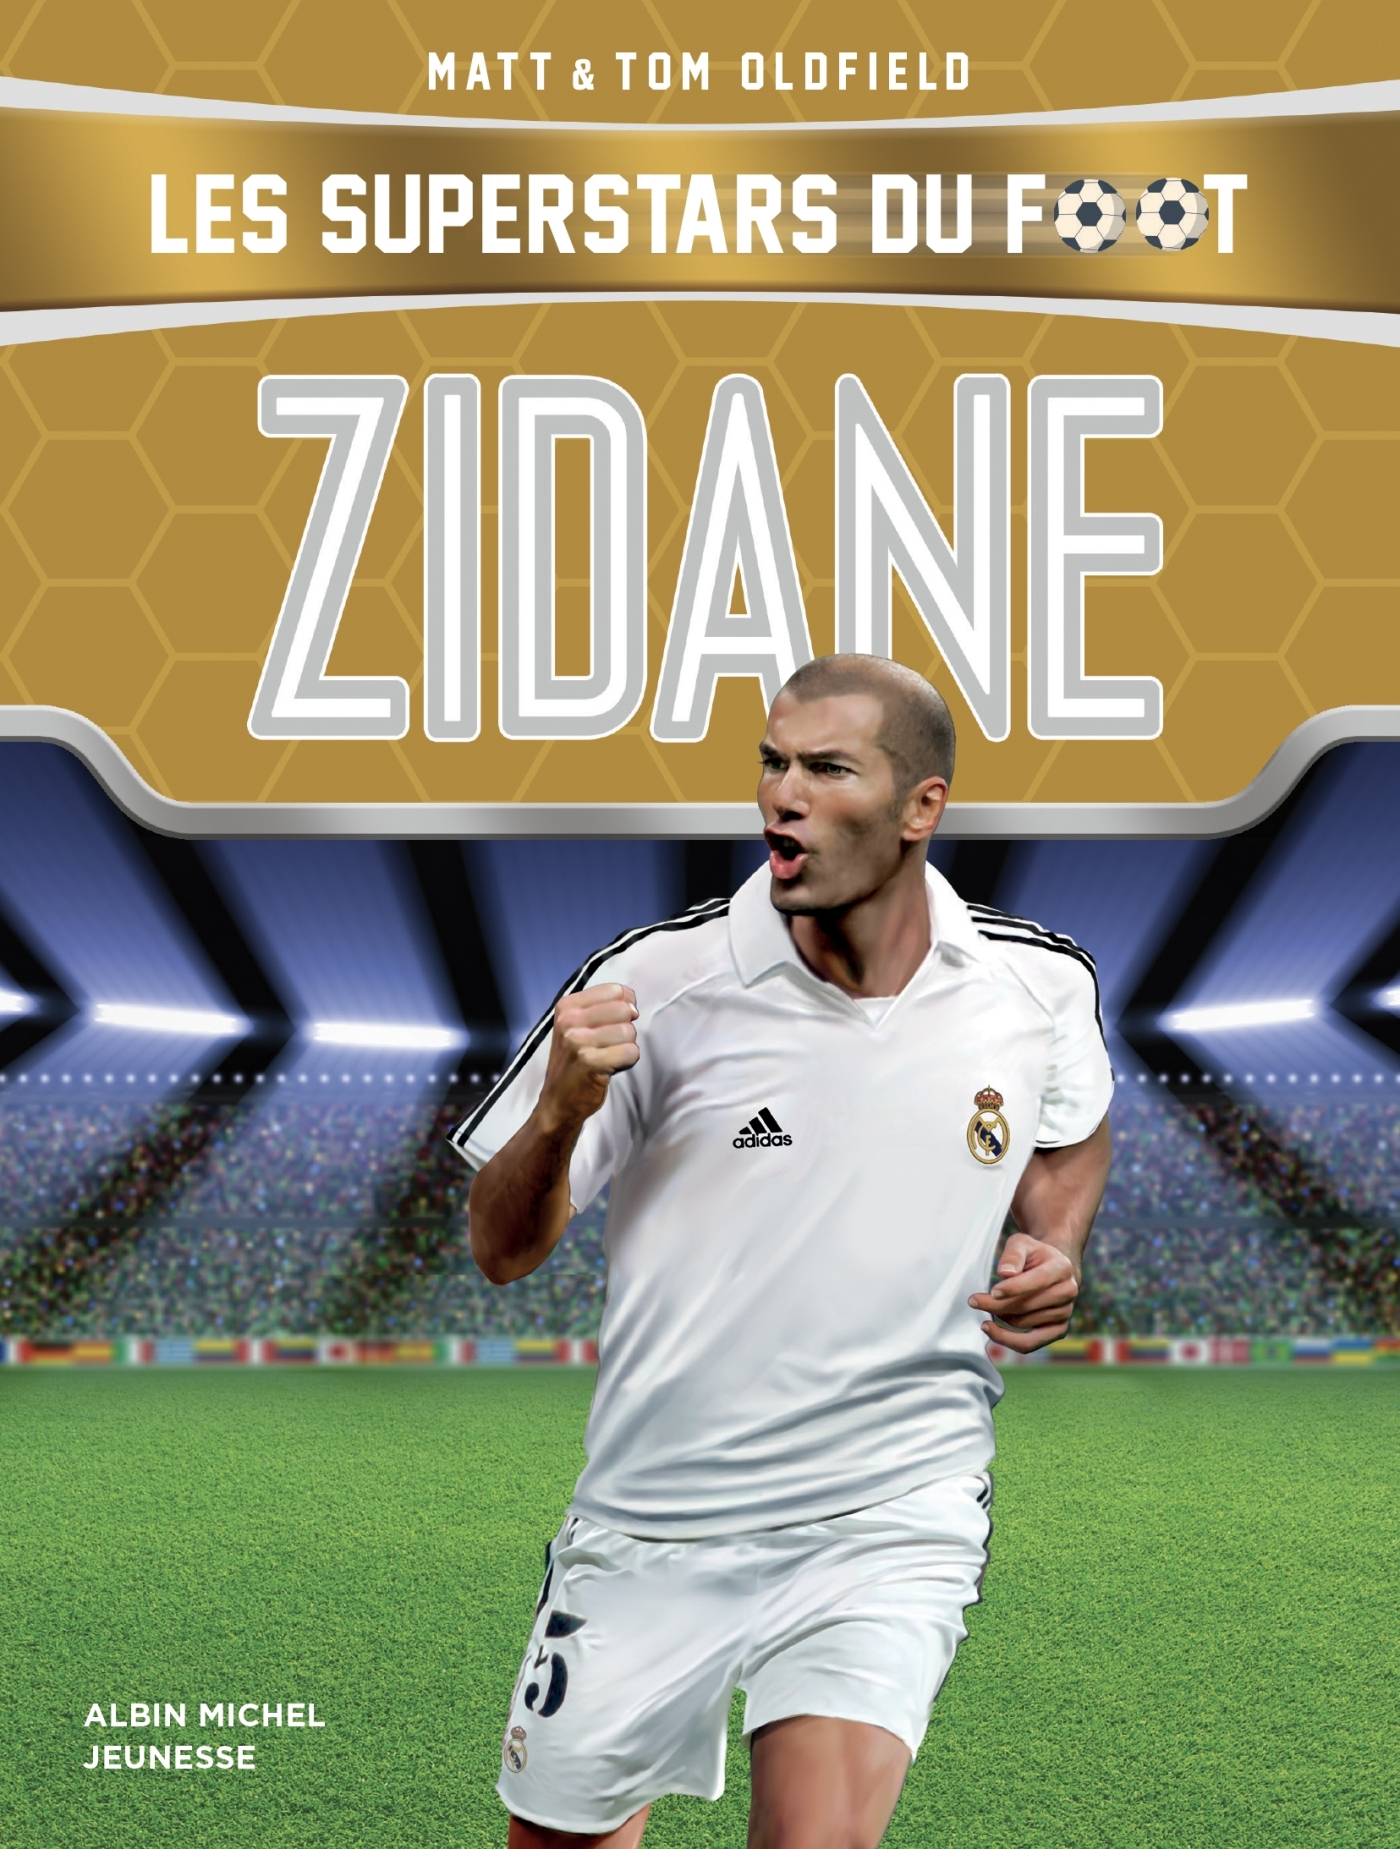 ZIDANE - LES SUPERSTARS DU FOOT